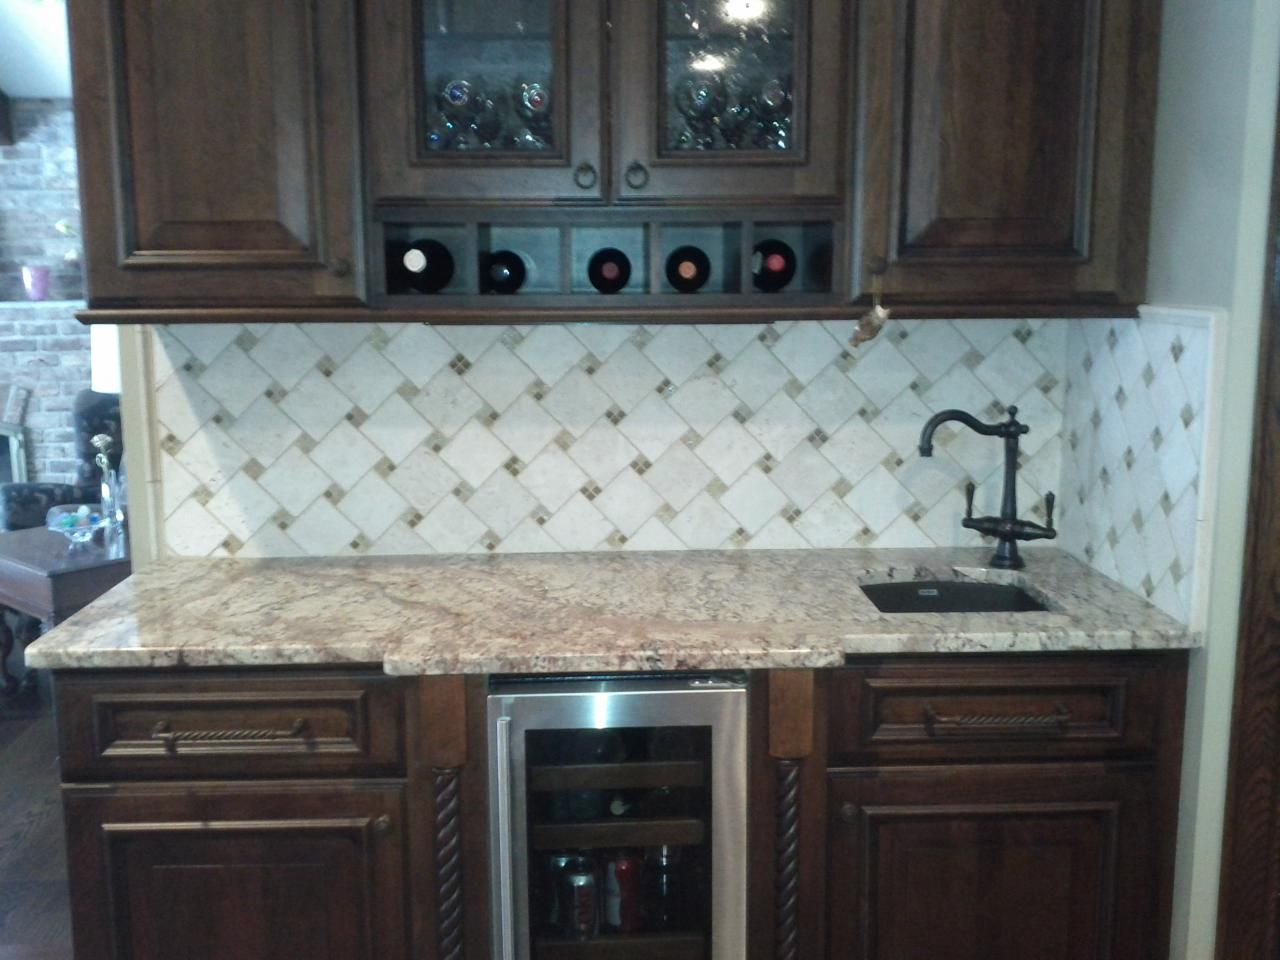 kitchen tile backslash kitchen backsplash 10 best images about kitchen tile backslash on Pinterest Kitchen backsplash design Marbles and Kitchen backsplash